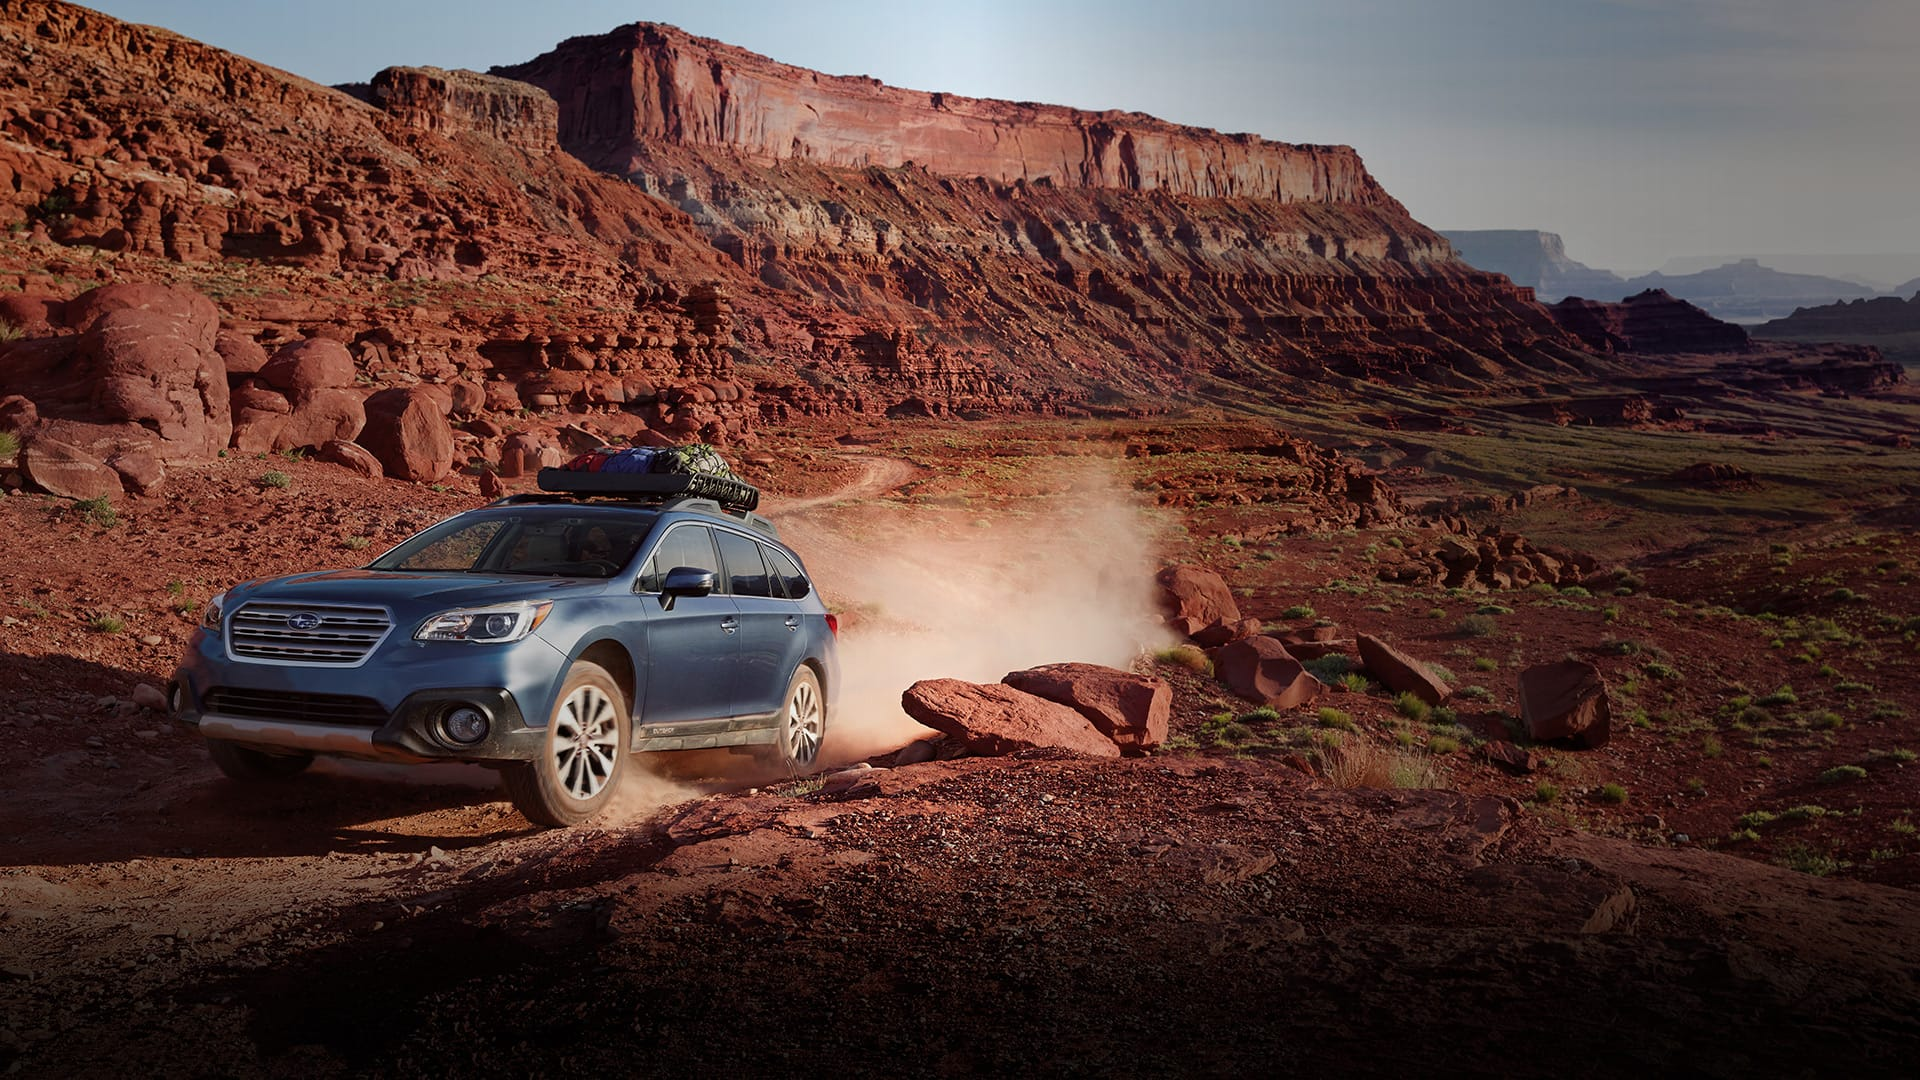 Adventures often take you to remote places. In the Outback, you'll come prepared. With 8.7 inches of ground clearance, and the venerable Subaru Symmetrical All-Wheel Drive system, little can block you from getting there. Adversity? No problem, simply activate X-MODE<sup>®</sup> with Hill Descent Control for even more control and confidence. And with up to 32 miles per gallon<sup>1</sup>, the responsive SUBARU BOXER<sup>®</sup> engine has the efficiency to help you go farther, and the reliability to go the distance.